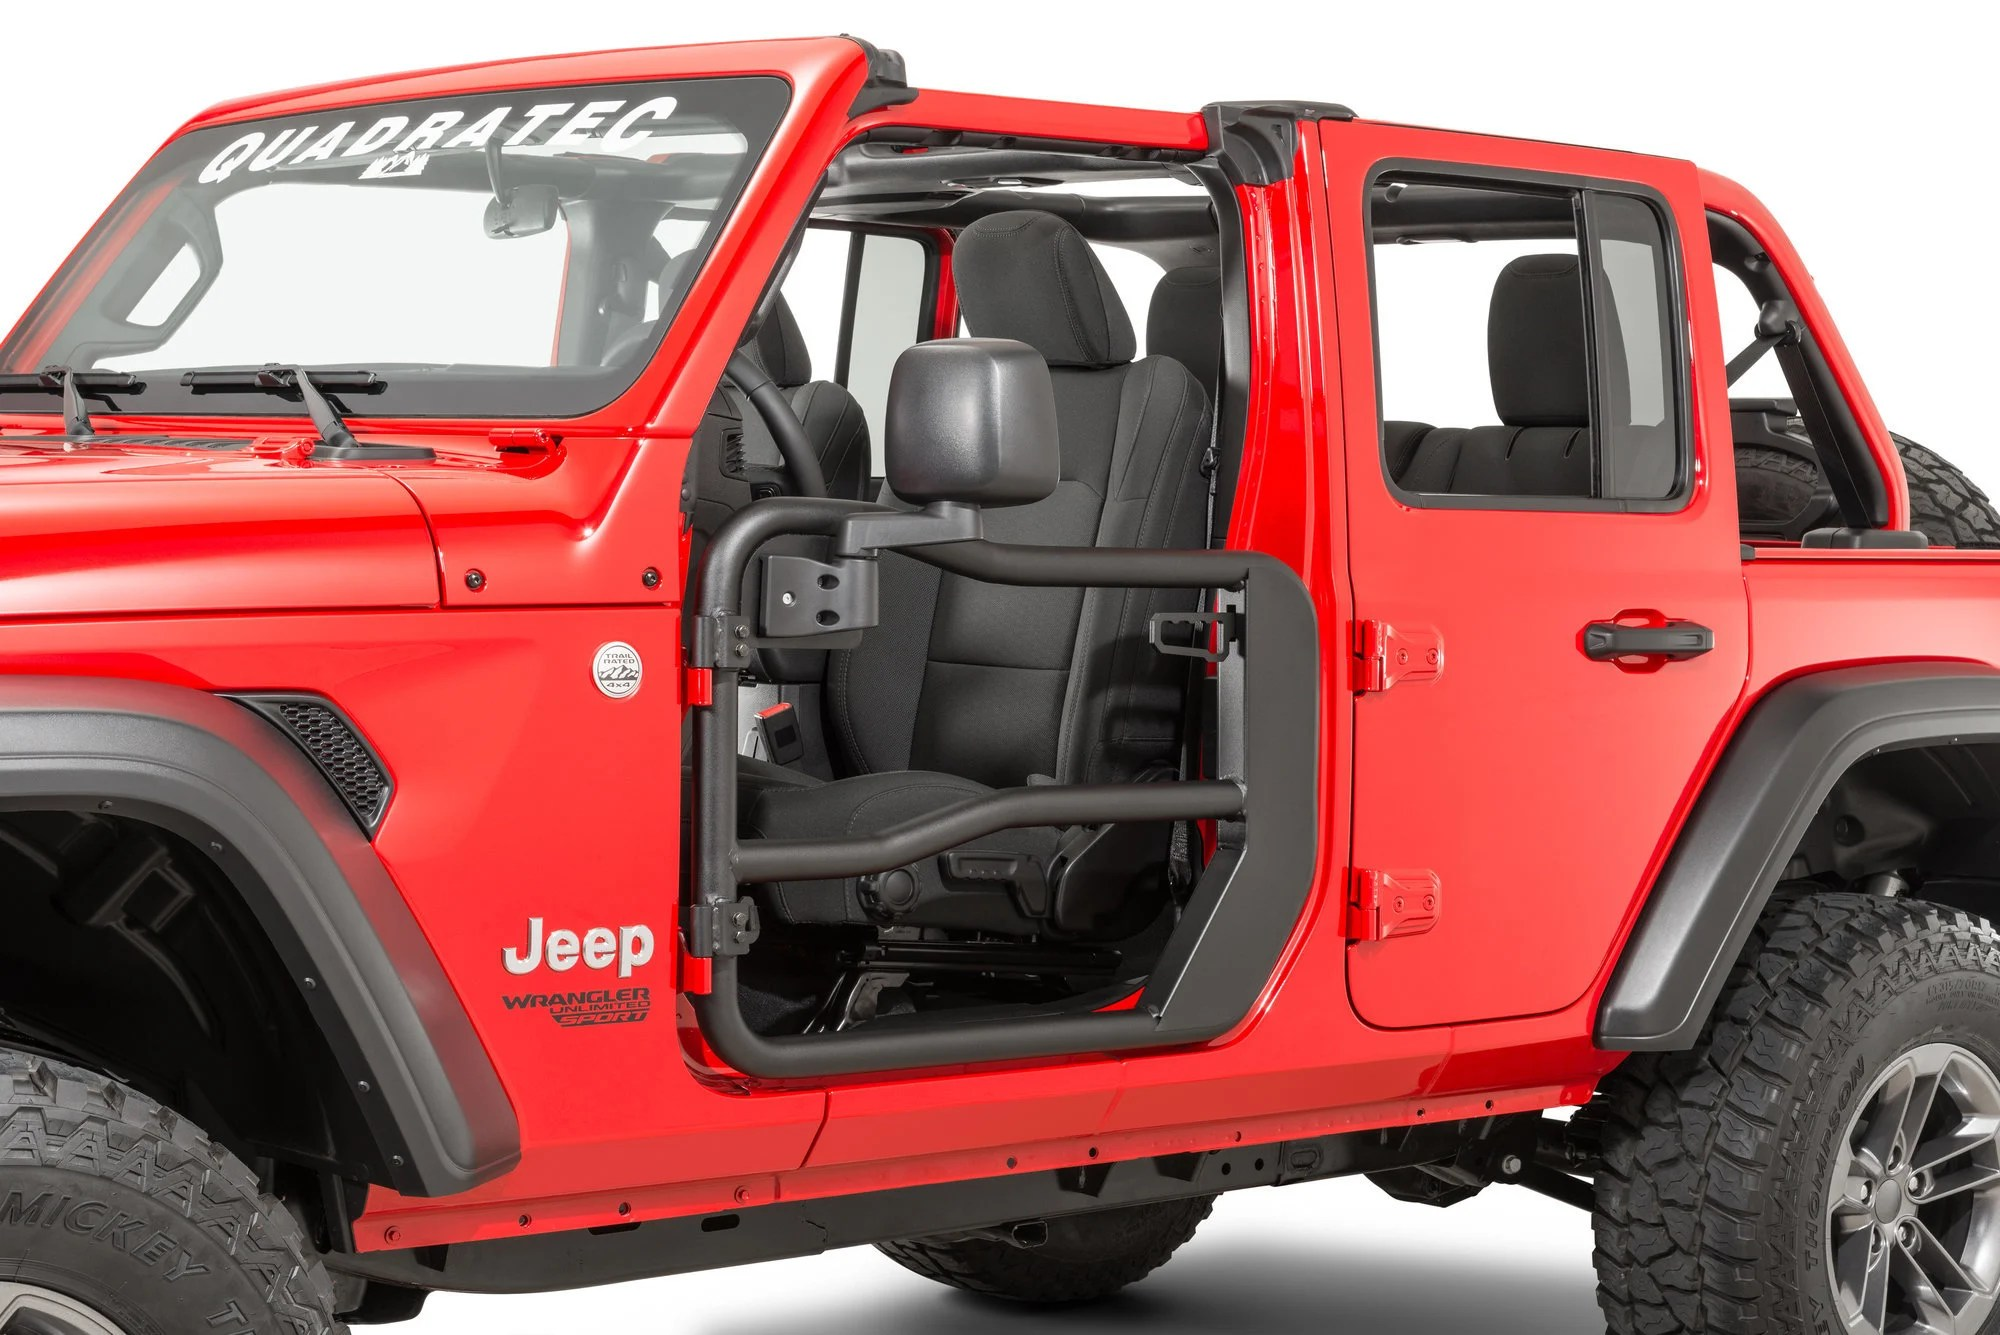 hight resolution of rugged ridge fortis front tube doors with free quadratec mirrors for 18 19 jeep wrangler jl and 2020 gladiator jt quadratec